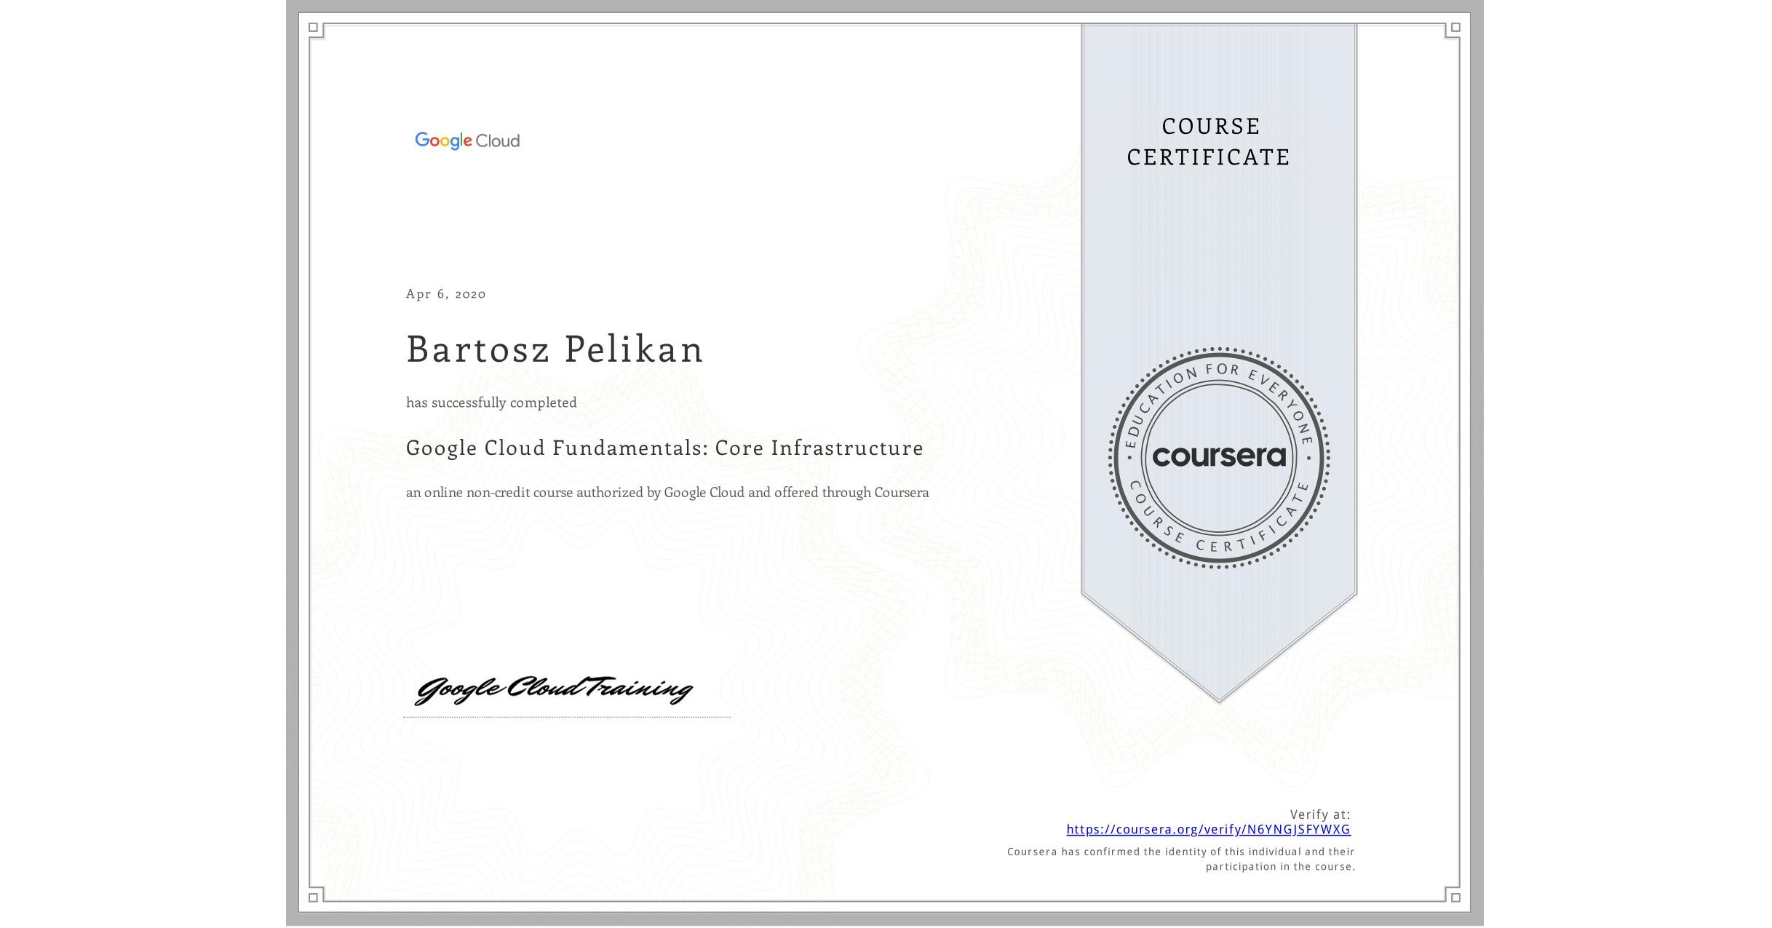 View certificate for Bartosz Pelikan, Google Cloud Platform Fundamentals: Core Infrastructure, an online non-credit course authorized by Google Cloud and offered through Coursera